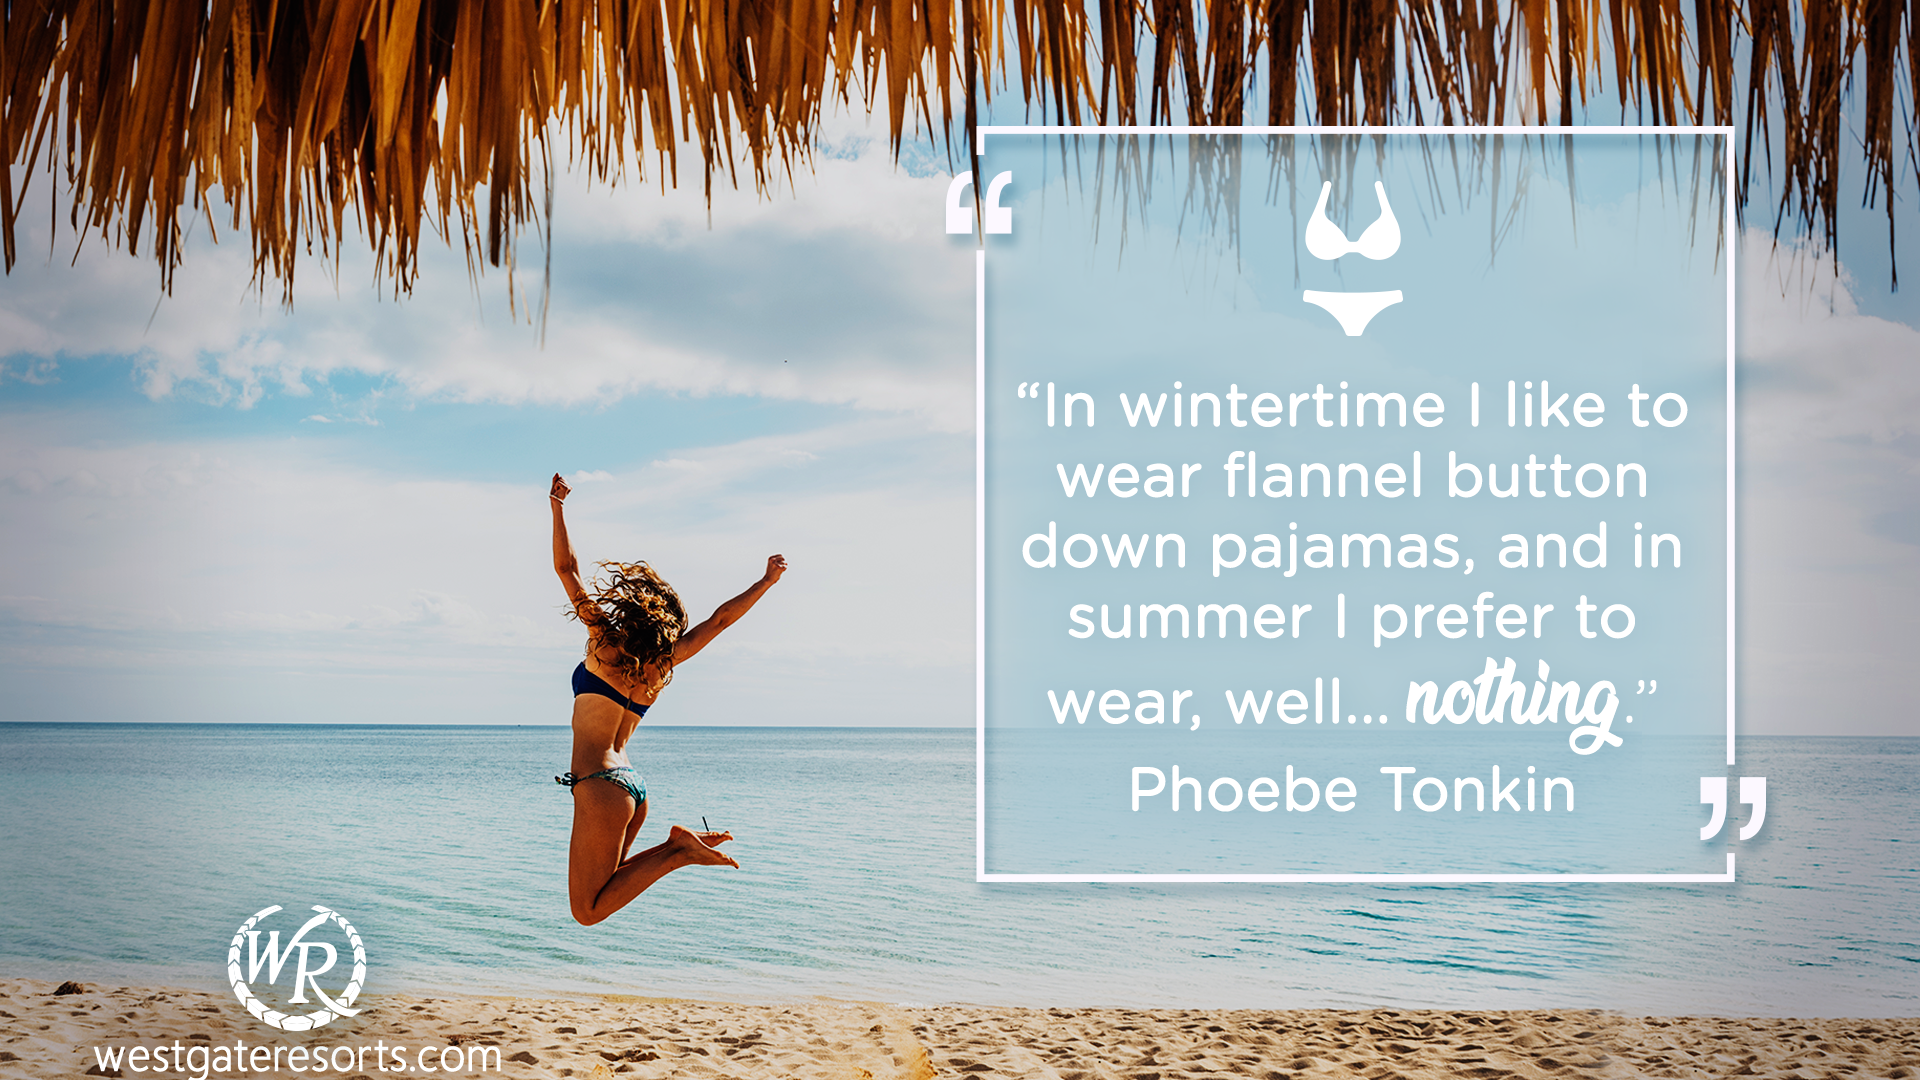 In Wintertime I Like to Wear Flannel Button Down Pajamas, and in Summer I Prefer to Wear, Well... Nothing | Phoebe Tonkin | Motivational Travel Quotes